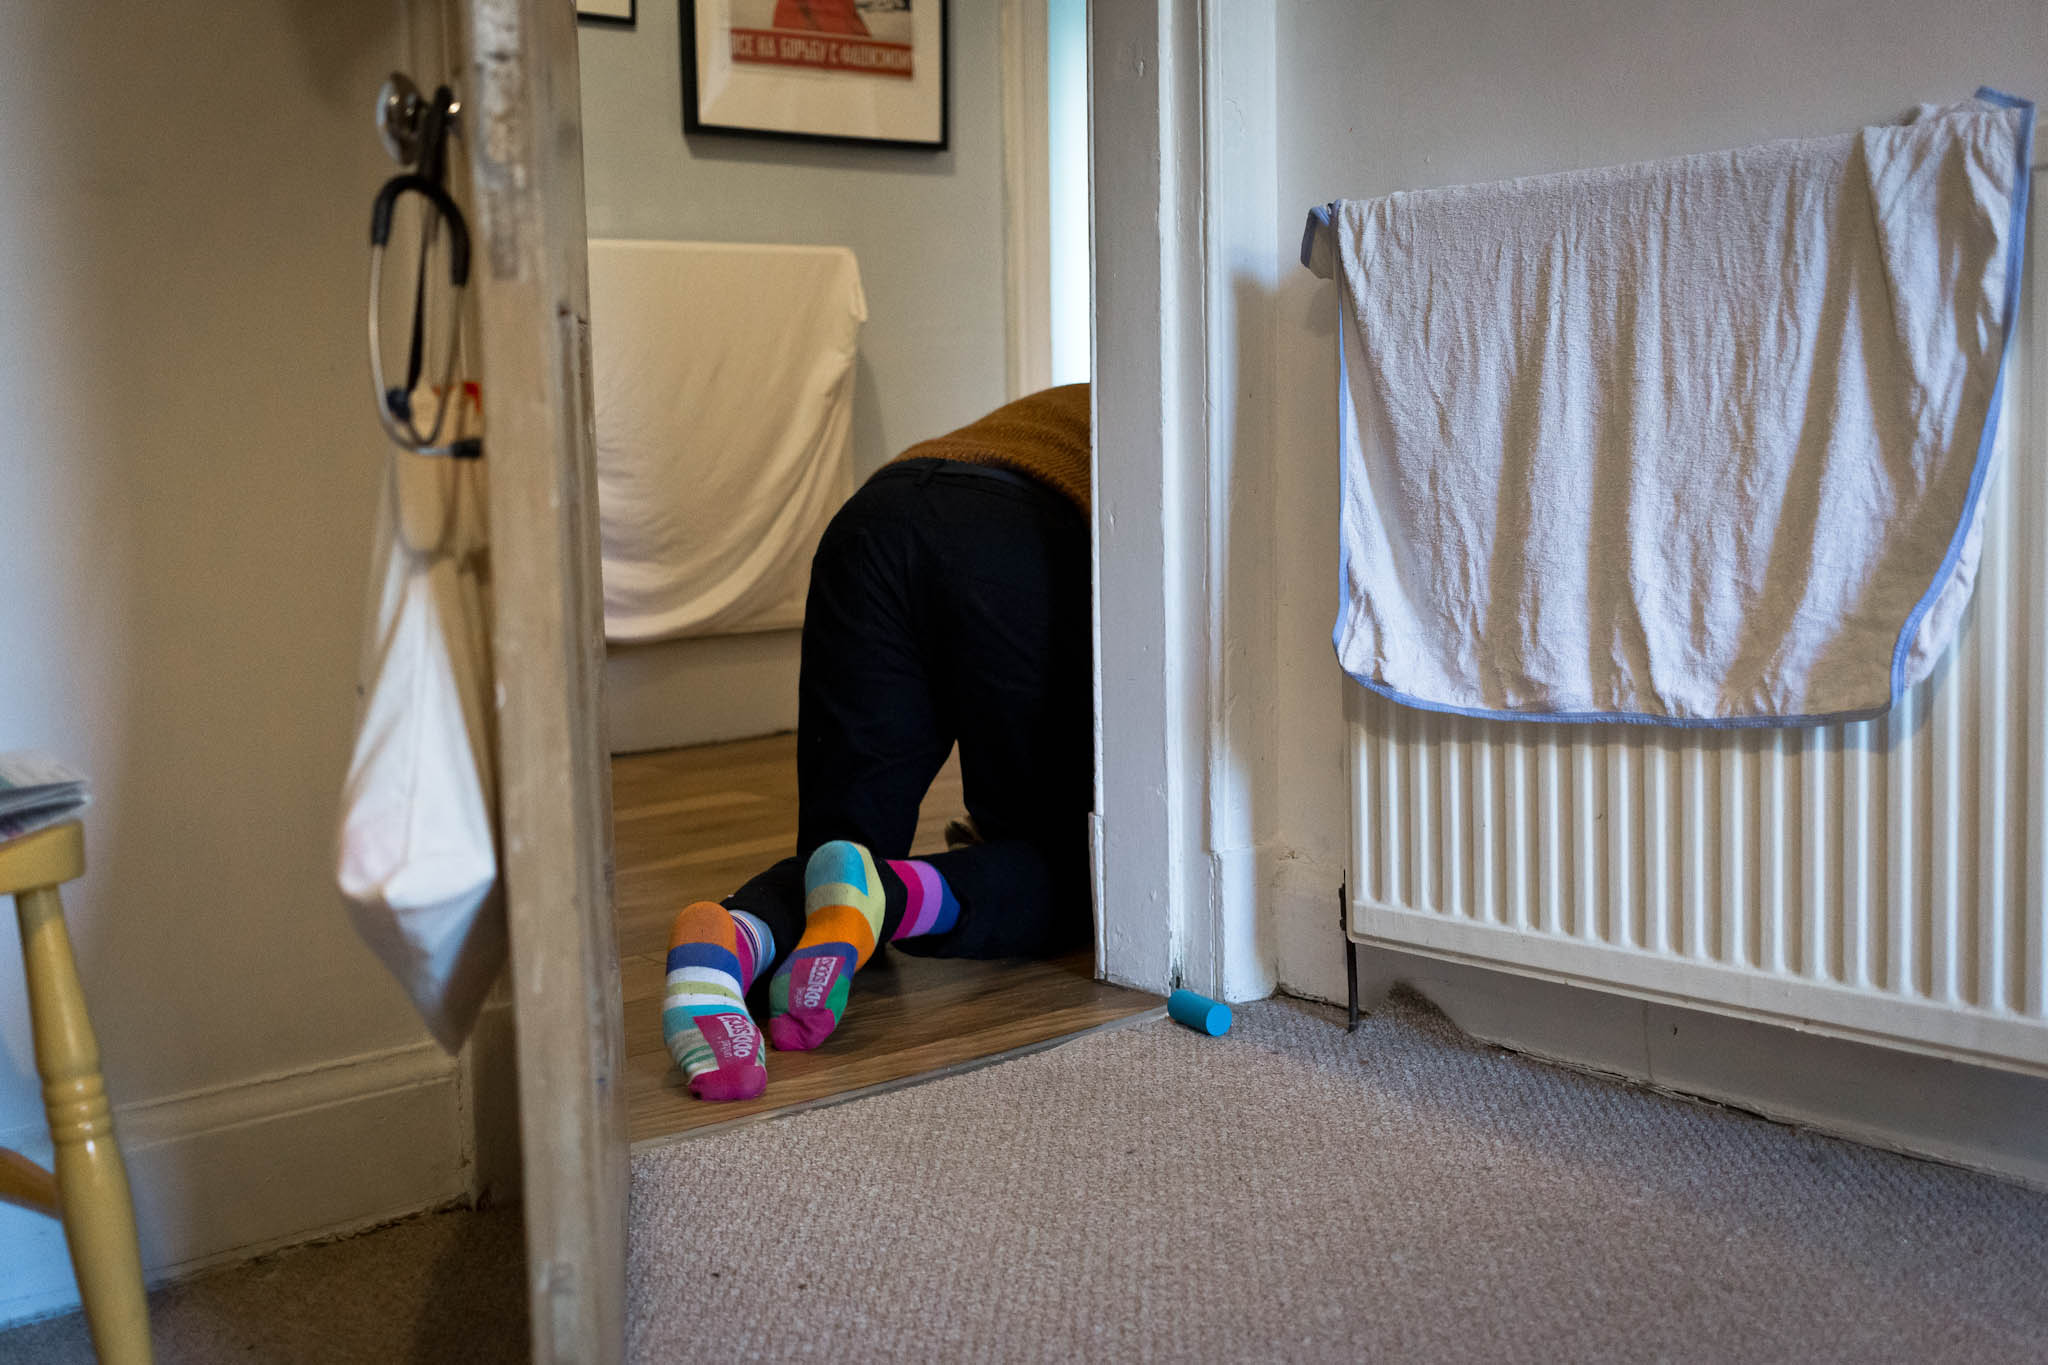 Feet in colourful socks seen crawling away through a doorway following baby